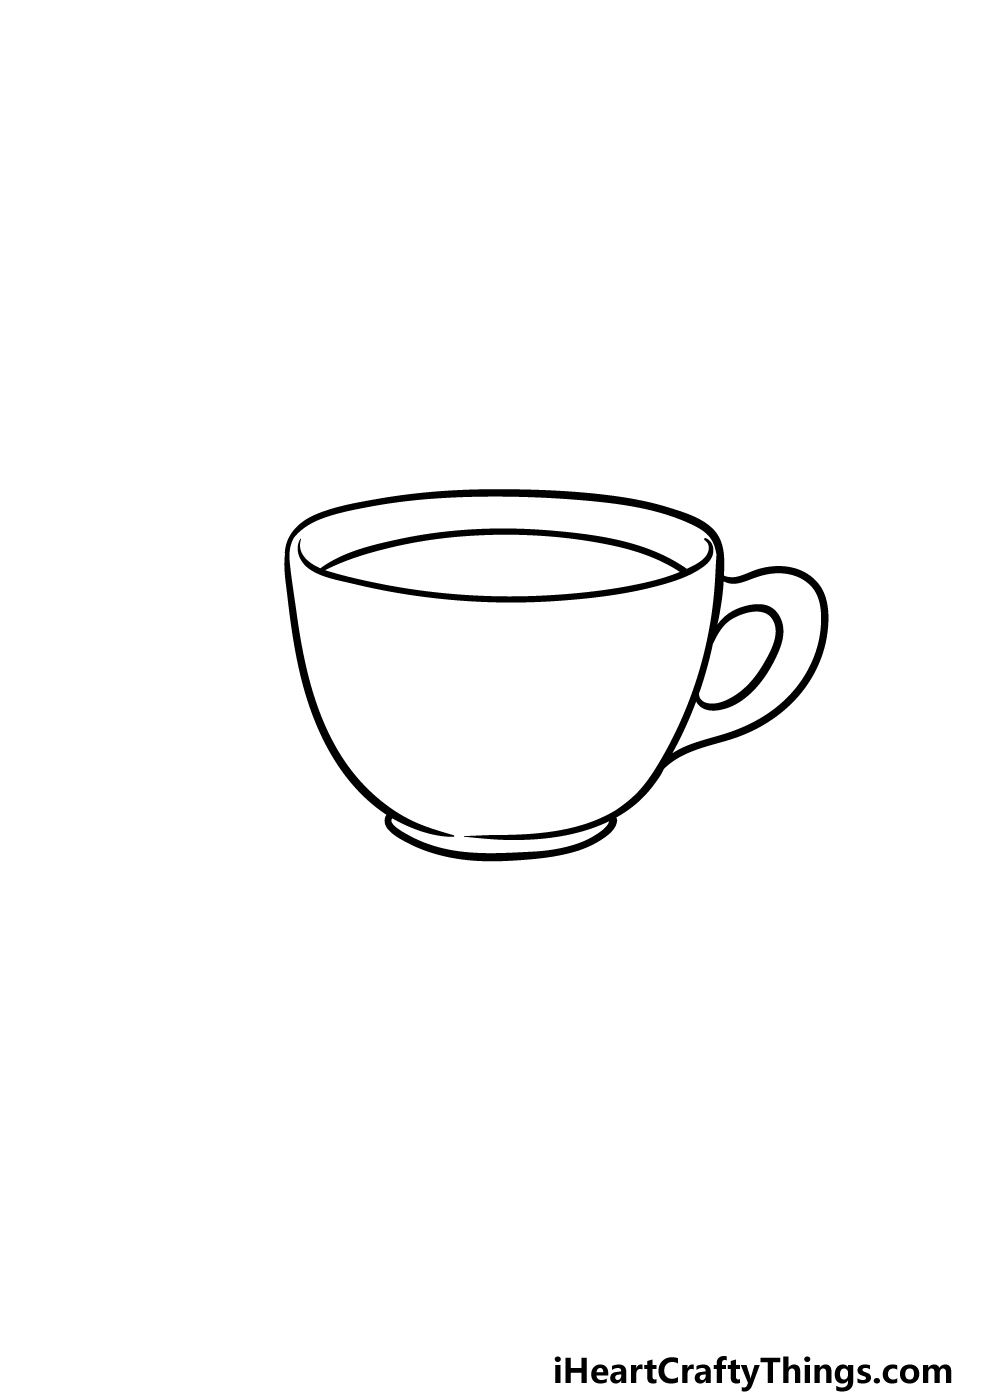 drawing a tea cup step 2